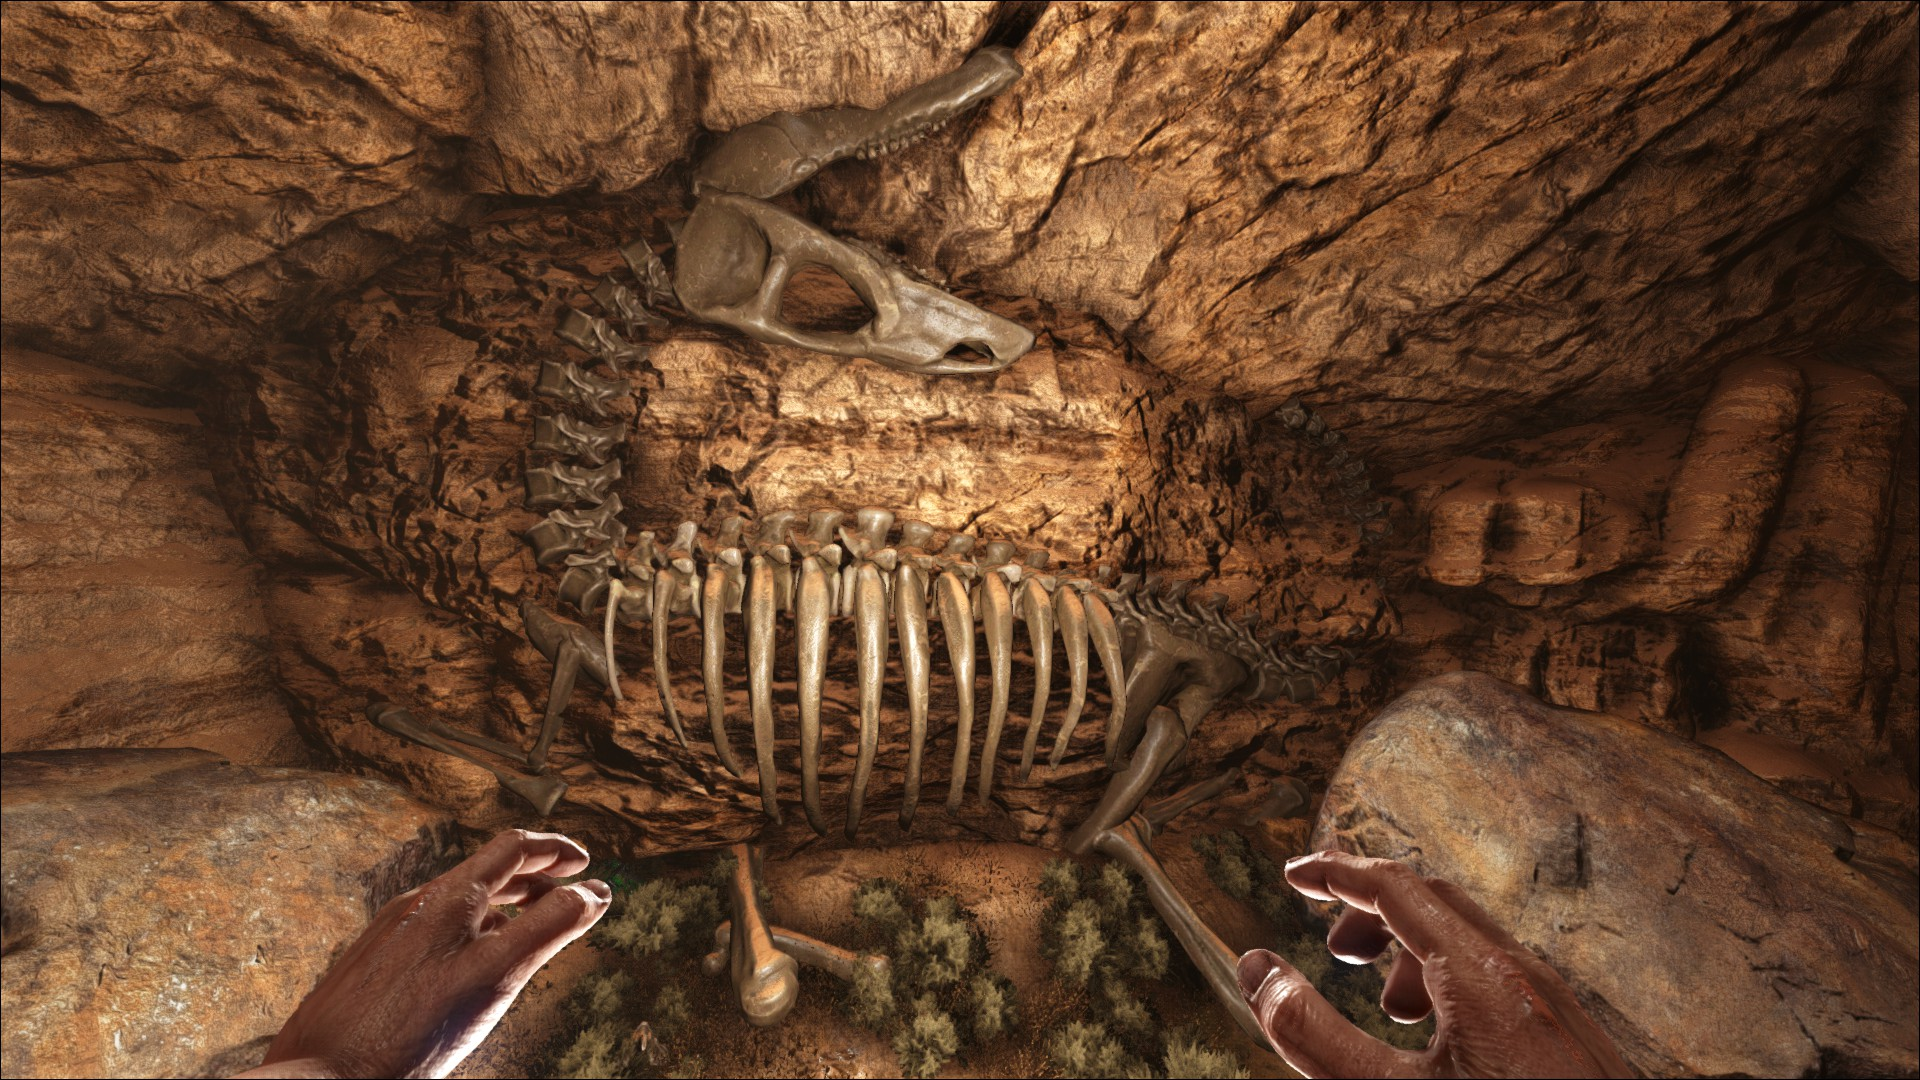 Ark Karte Scorched Earth.Die Höhlen In Ark Scorched Earth Tutorials Howto Ark Survival